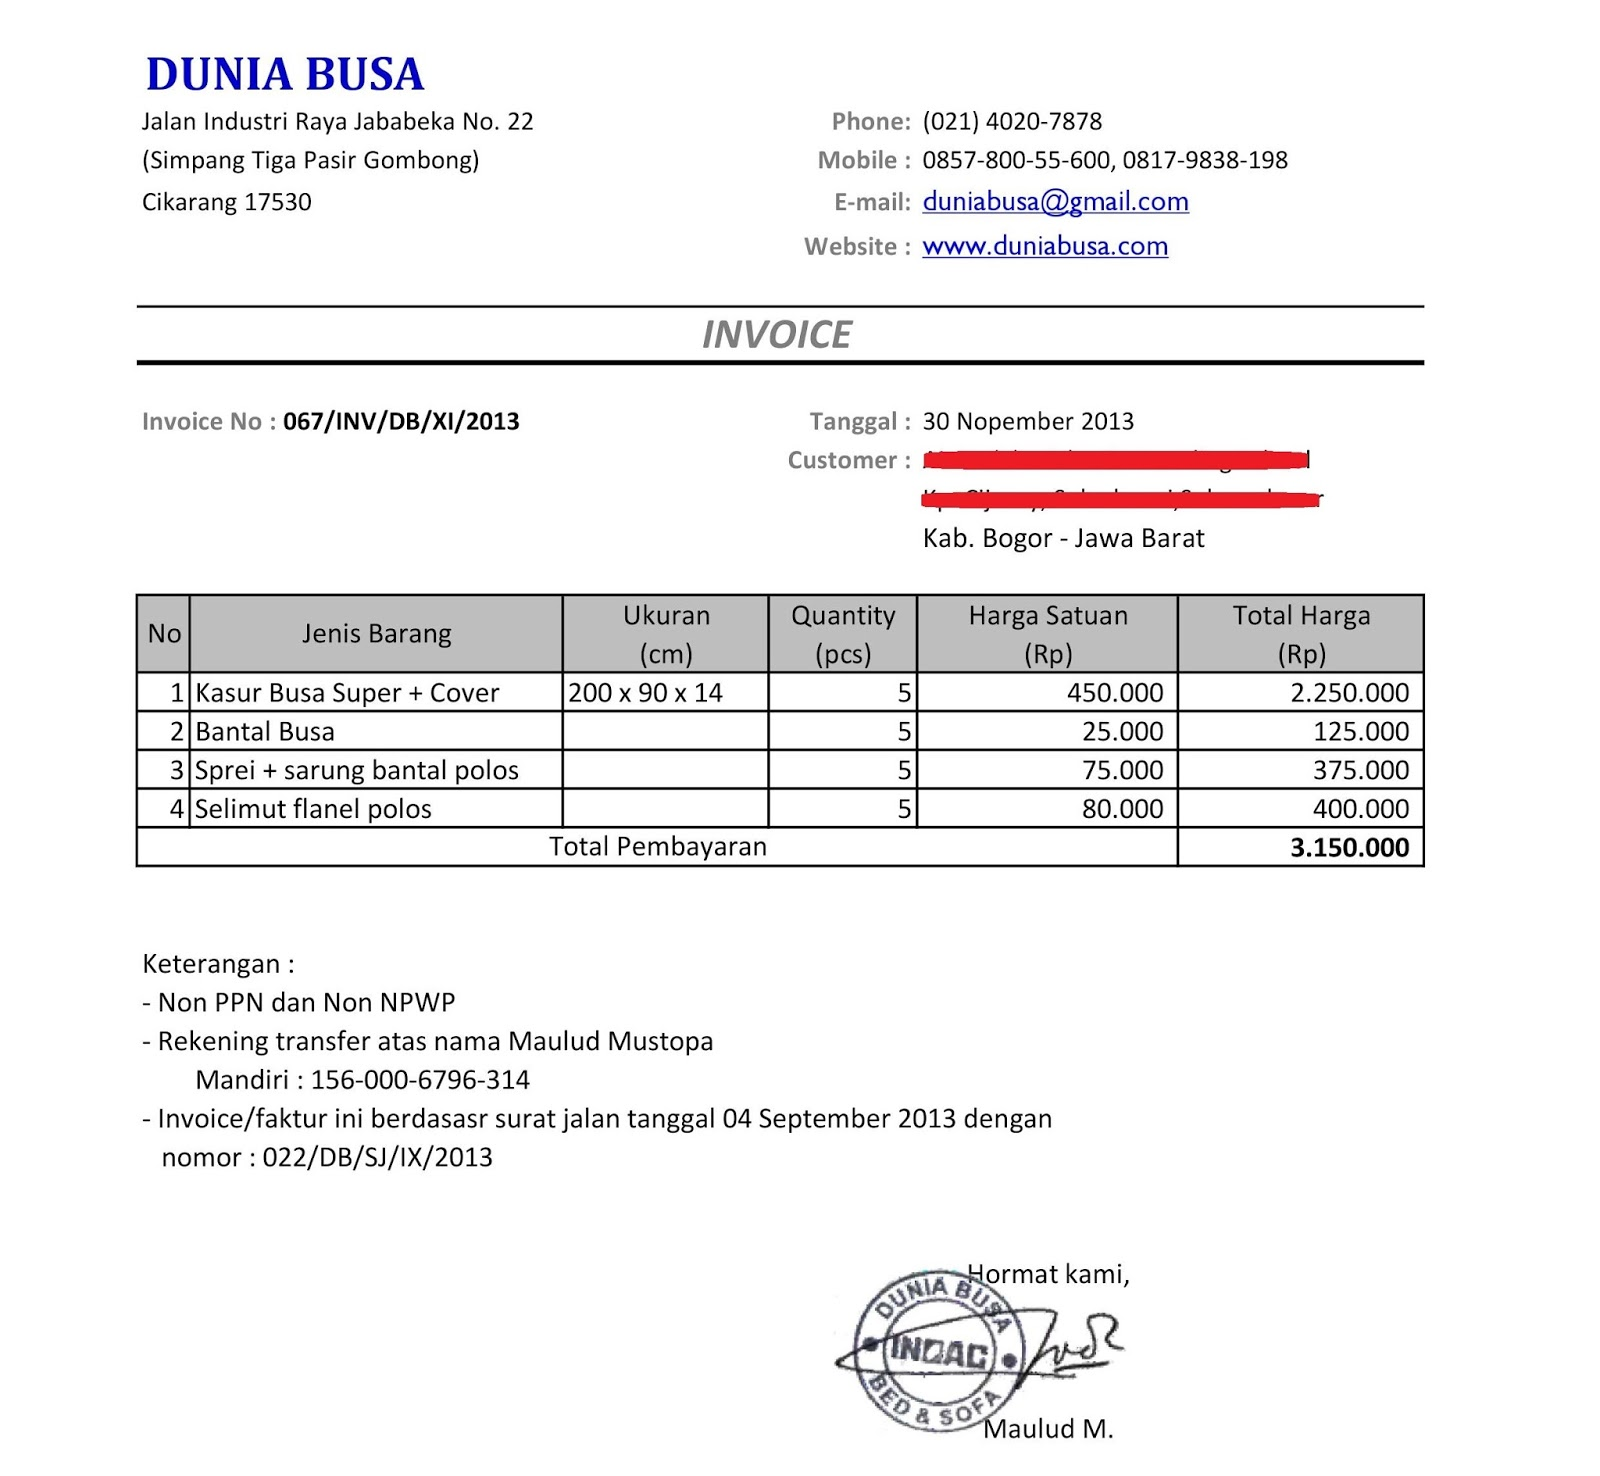 Usdgus  Nice Free Invoice Online  Create Invoice Online  Invoice Template  With Luxury Contoh Format Invoice Atau Surat Tagihan  Brankas Arsip  Free Invoice Online With Attractive Customized Receipt Book Also Read Receipt For Gmail In Addition Orange County Business Tax Receipt And Free Receipt As Well As Receipt Wallet Additionally Target Returns Without A Receipt From Sklepco With Usdgus  Luxury Free Invoice Online  Create Invoice Online  Invoice Template  With Attractive Contoh Format Invoice Atau Surat Tagihan  Brankas Arsip  Free Invoice Online And Nice Customized Receipt Book Also Read Receipt For Gmail In Addition Orange County Business Tax Receipt From Sklepco